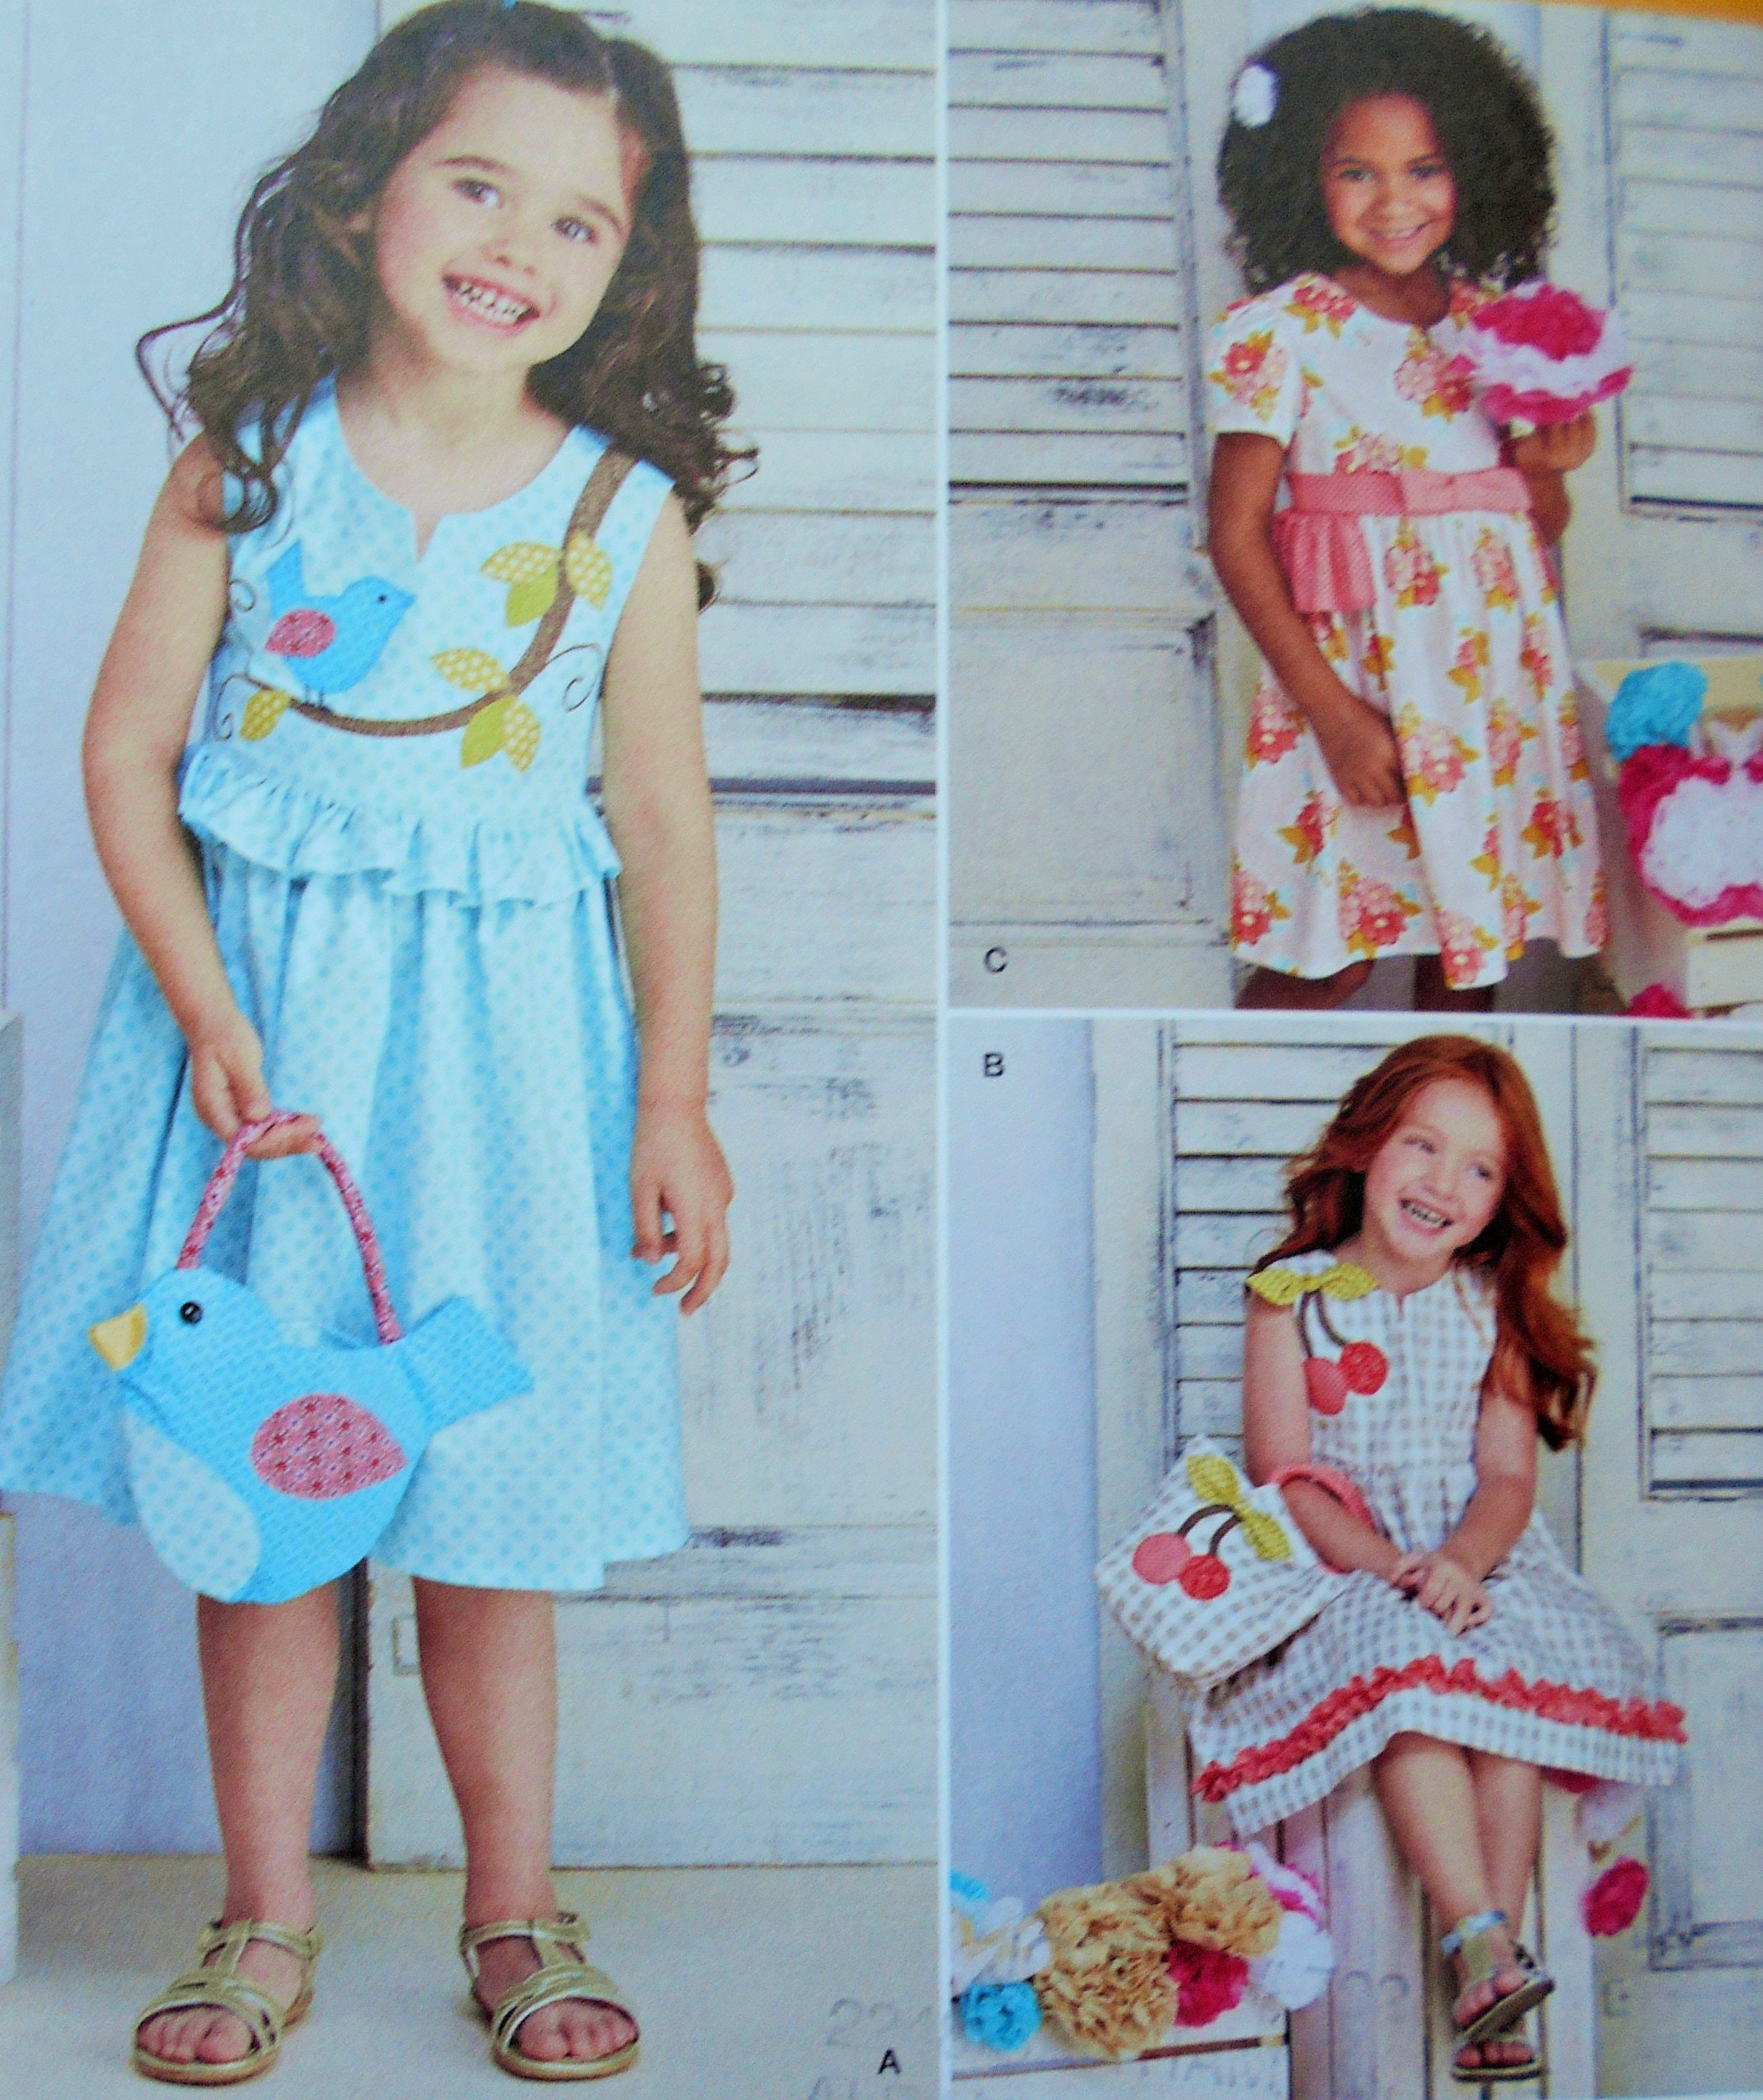 9201773ac4216 Simplicity Sewing Pattern 8063 Girl's Dress and Purses in Size 3-8. Little  Girl's Purse, Girl's Bag,Summer Dress, Appliqued Dress from RosiesPlayHouse  on ...